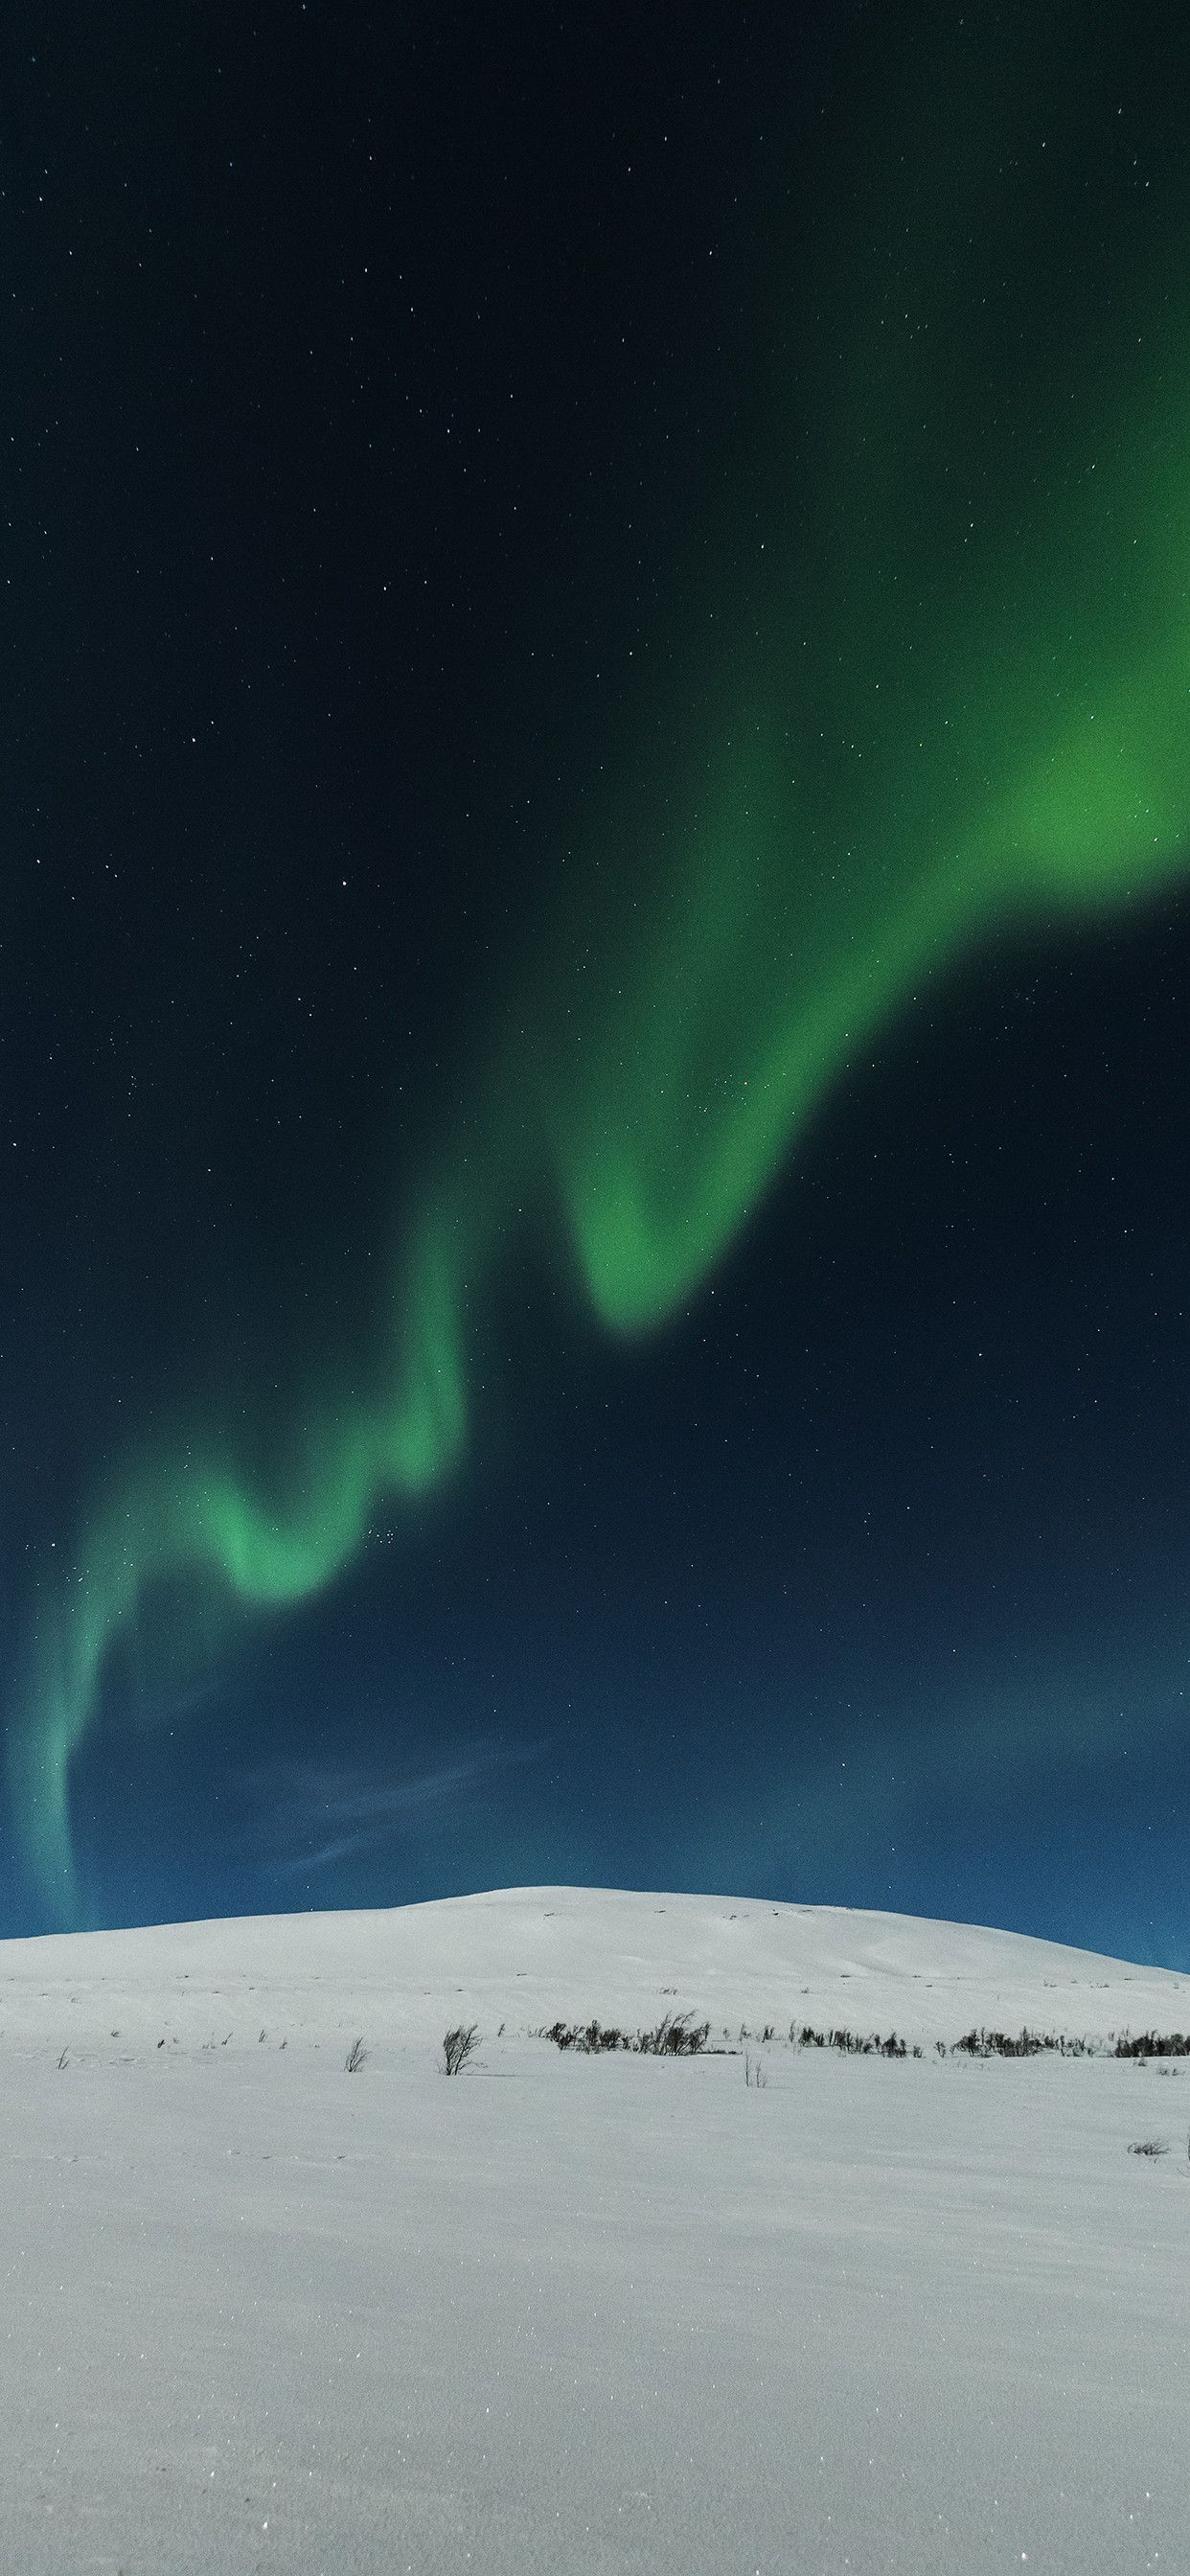 Res 1242x2688, iPhone wallpaper aurora borealis snow